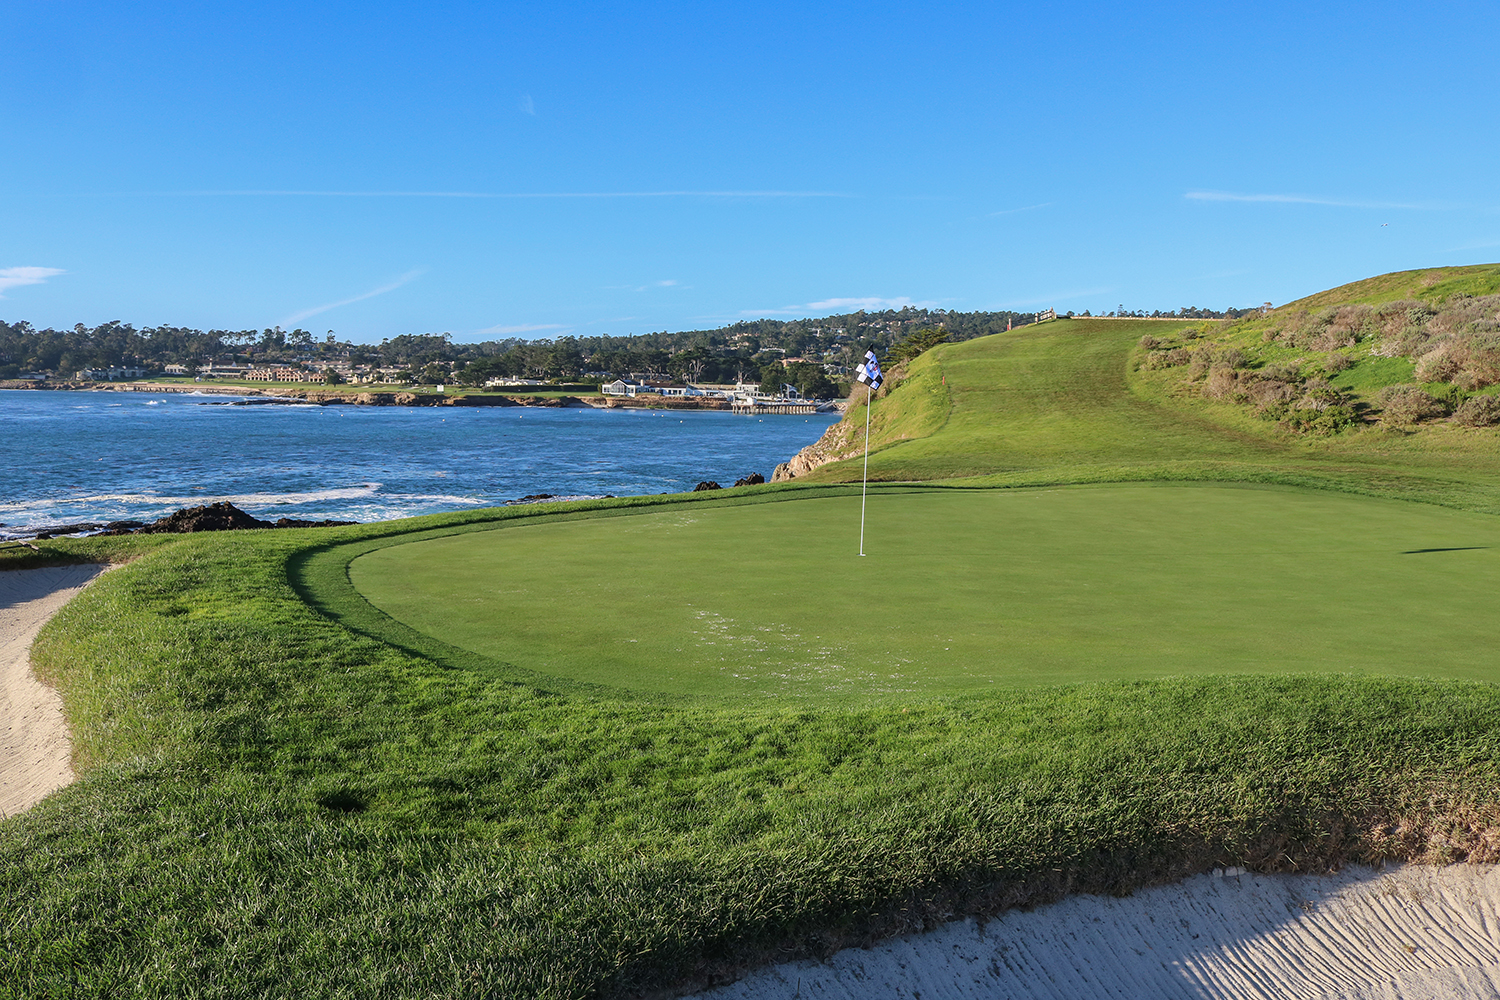 7th Hole At Pebble Beach Looking Up To Green